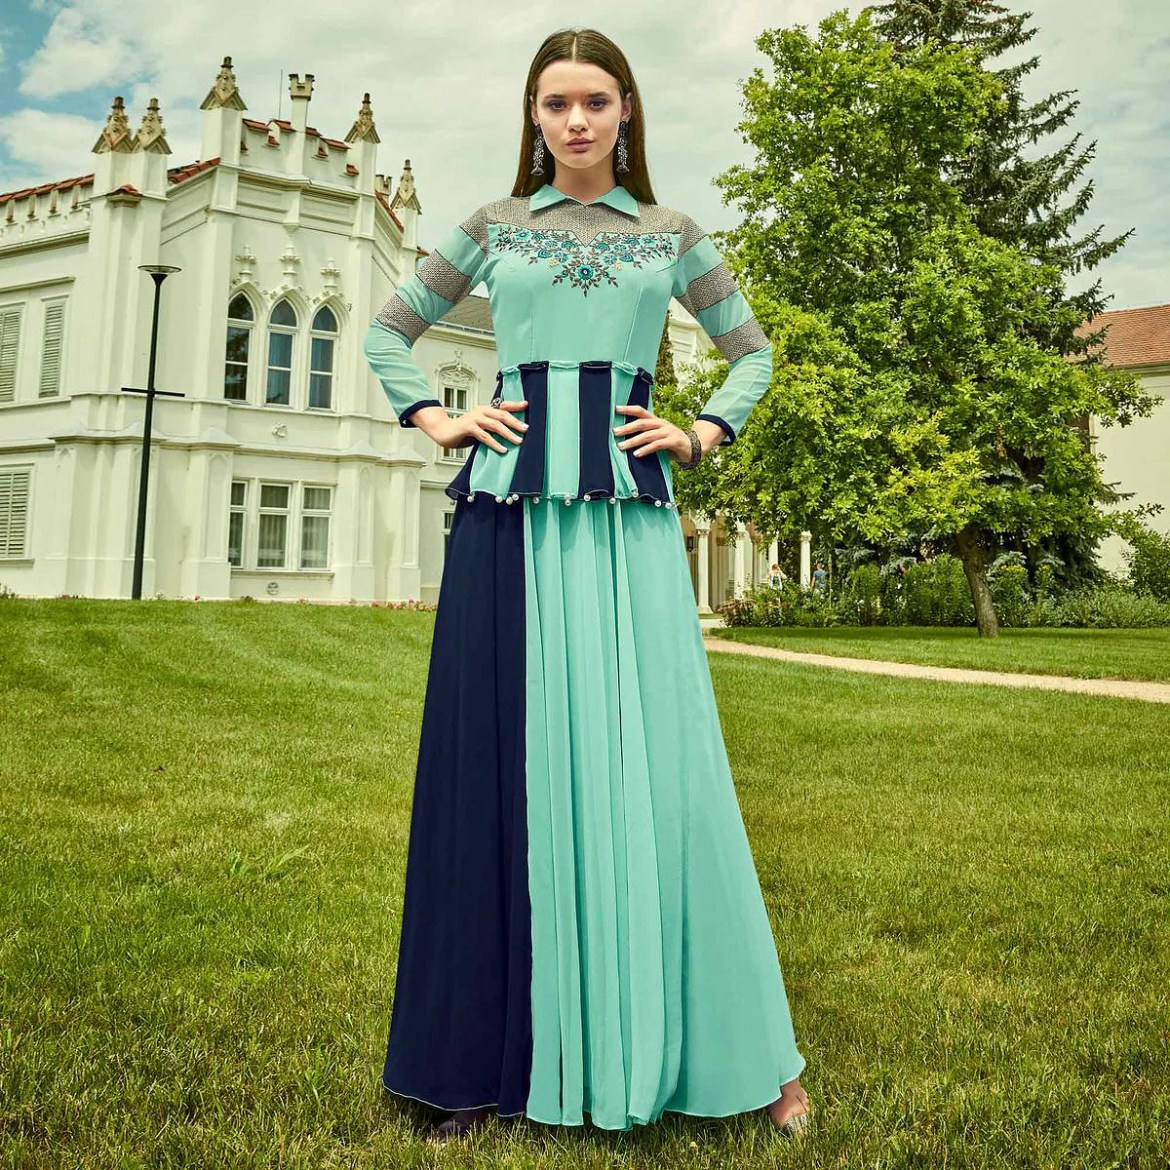 Adorable Aqua Blue Colored Party Wear Floral Embroidered Georgette Gown